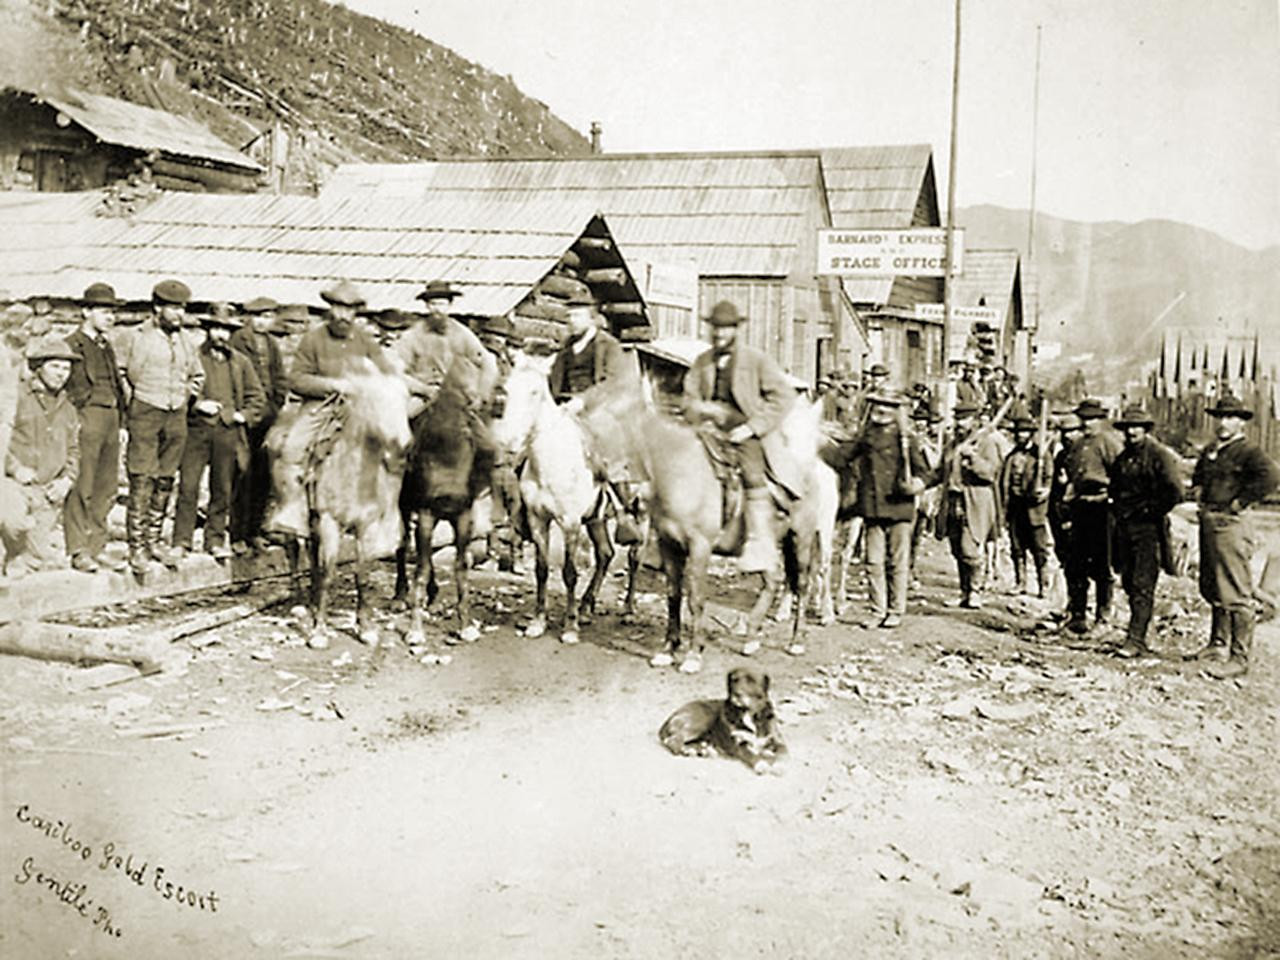 horses in front of wooden buildings